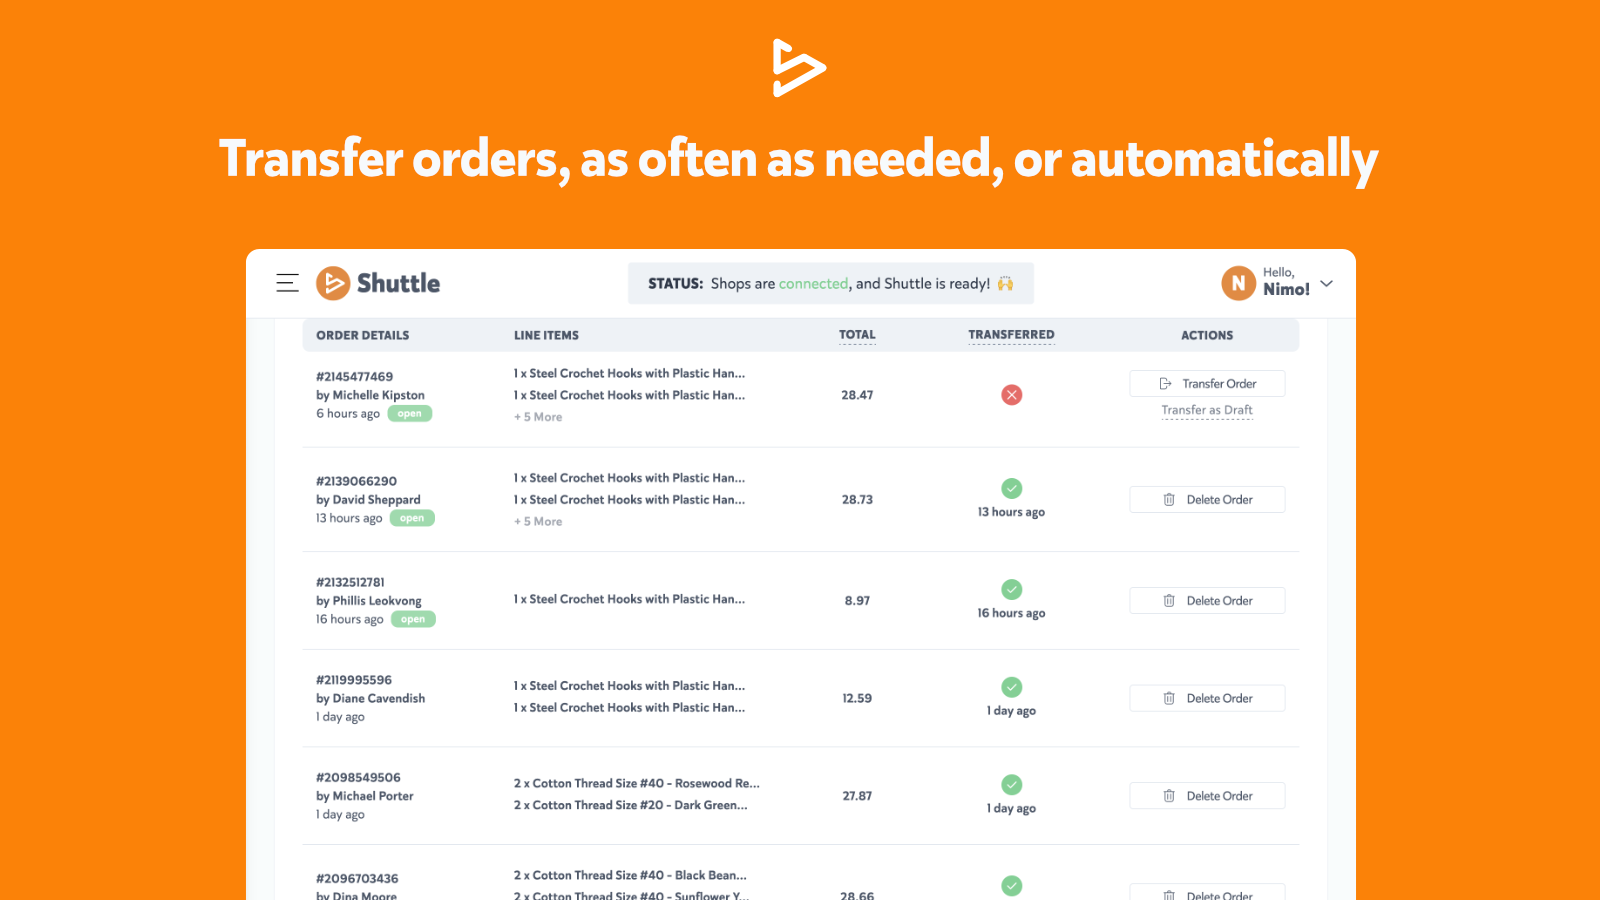 Transfer Orders as often as needed, or Automatically